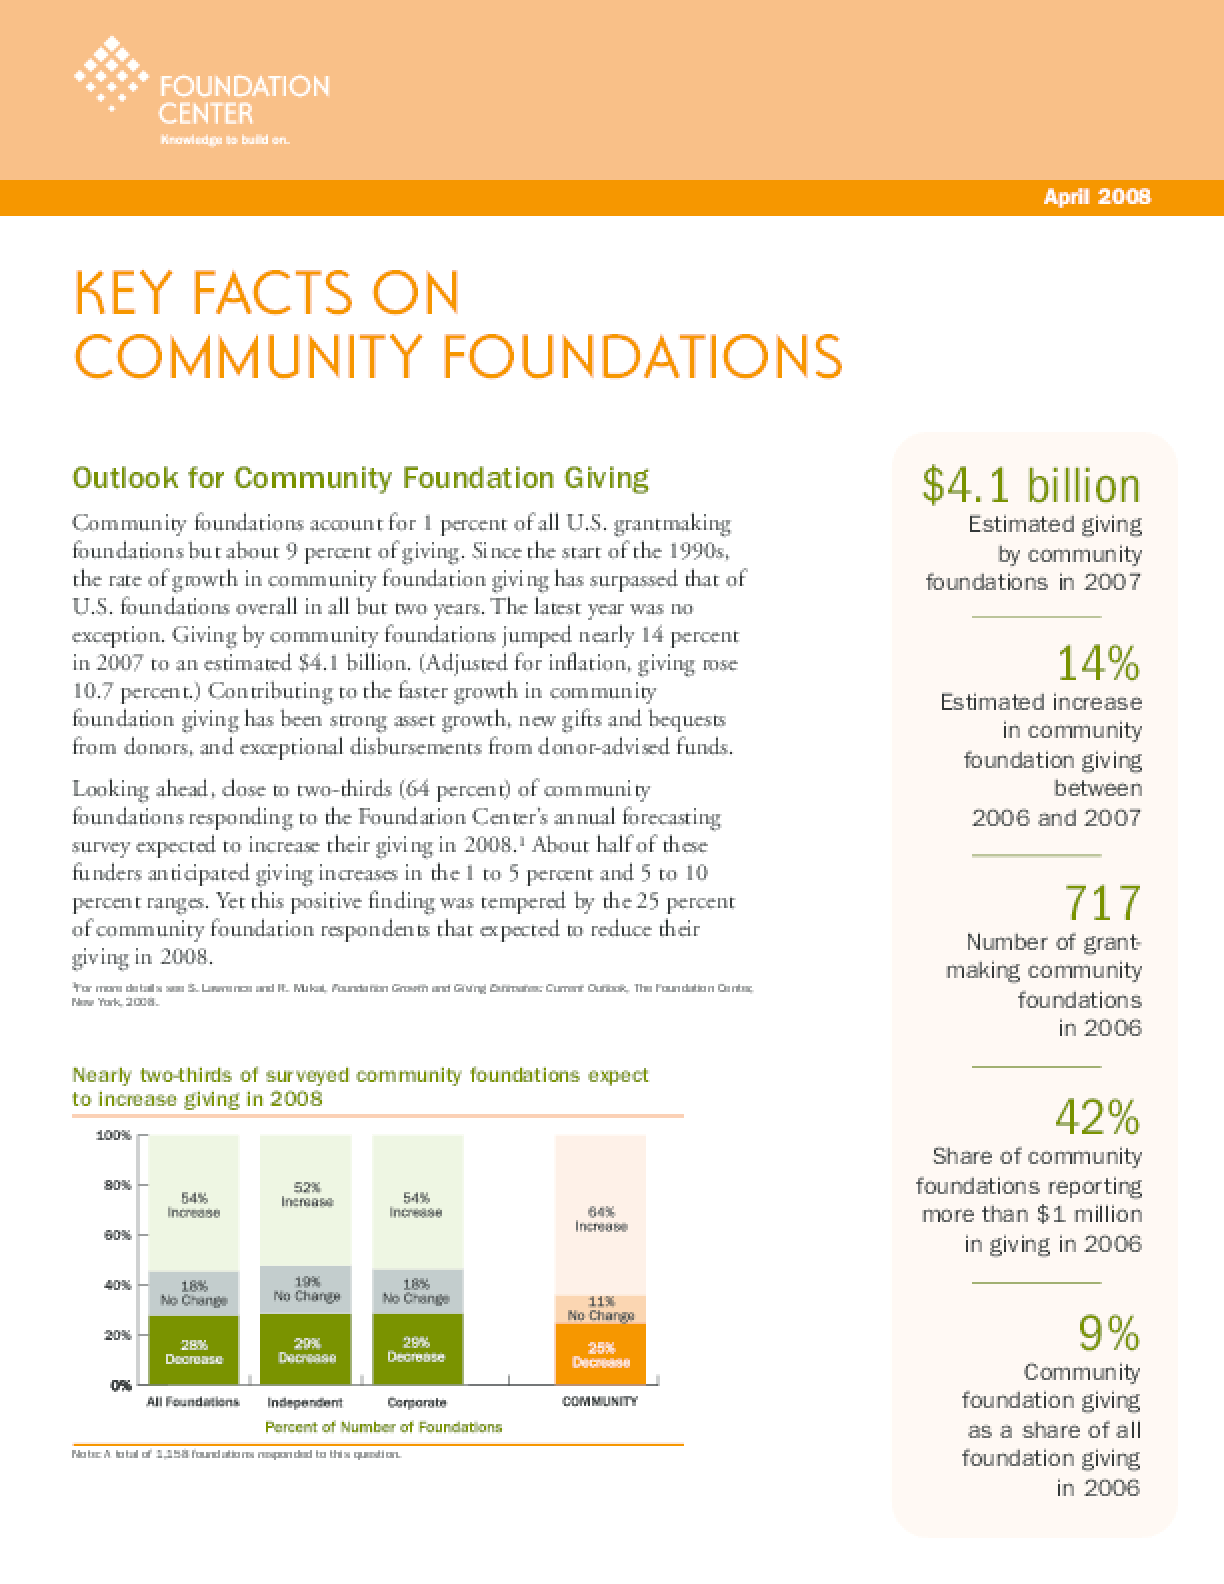 Key Facts on Community Foundations 2008